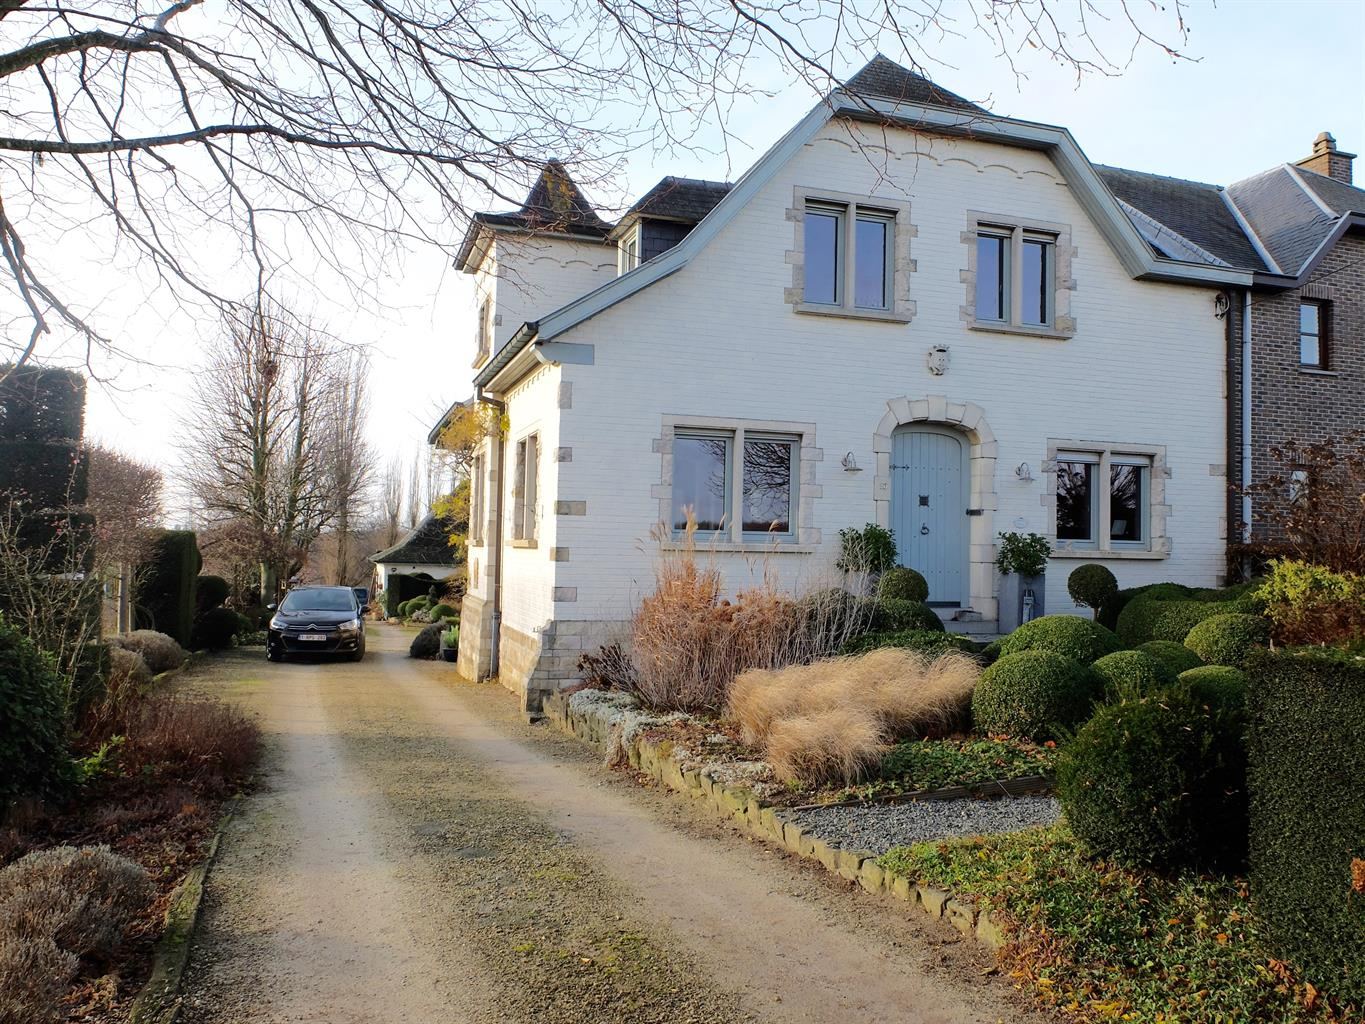 House - Asse - #3632067-26